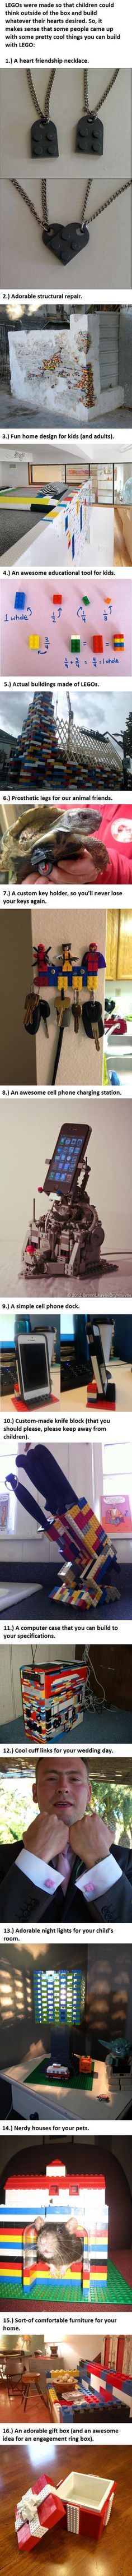 Awesome lego ideas! - 9GAG